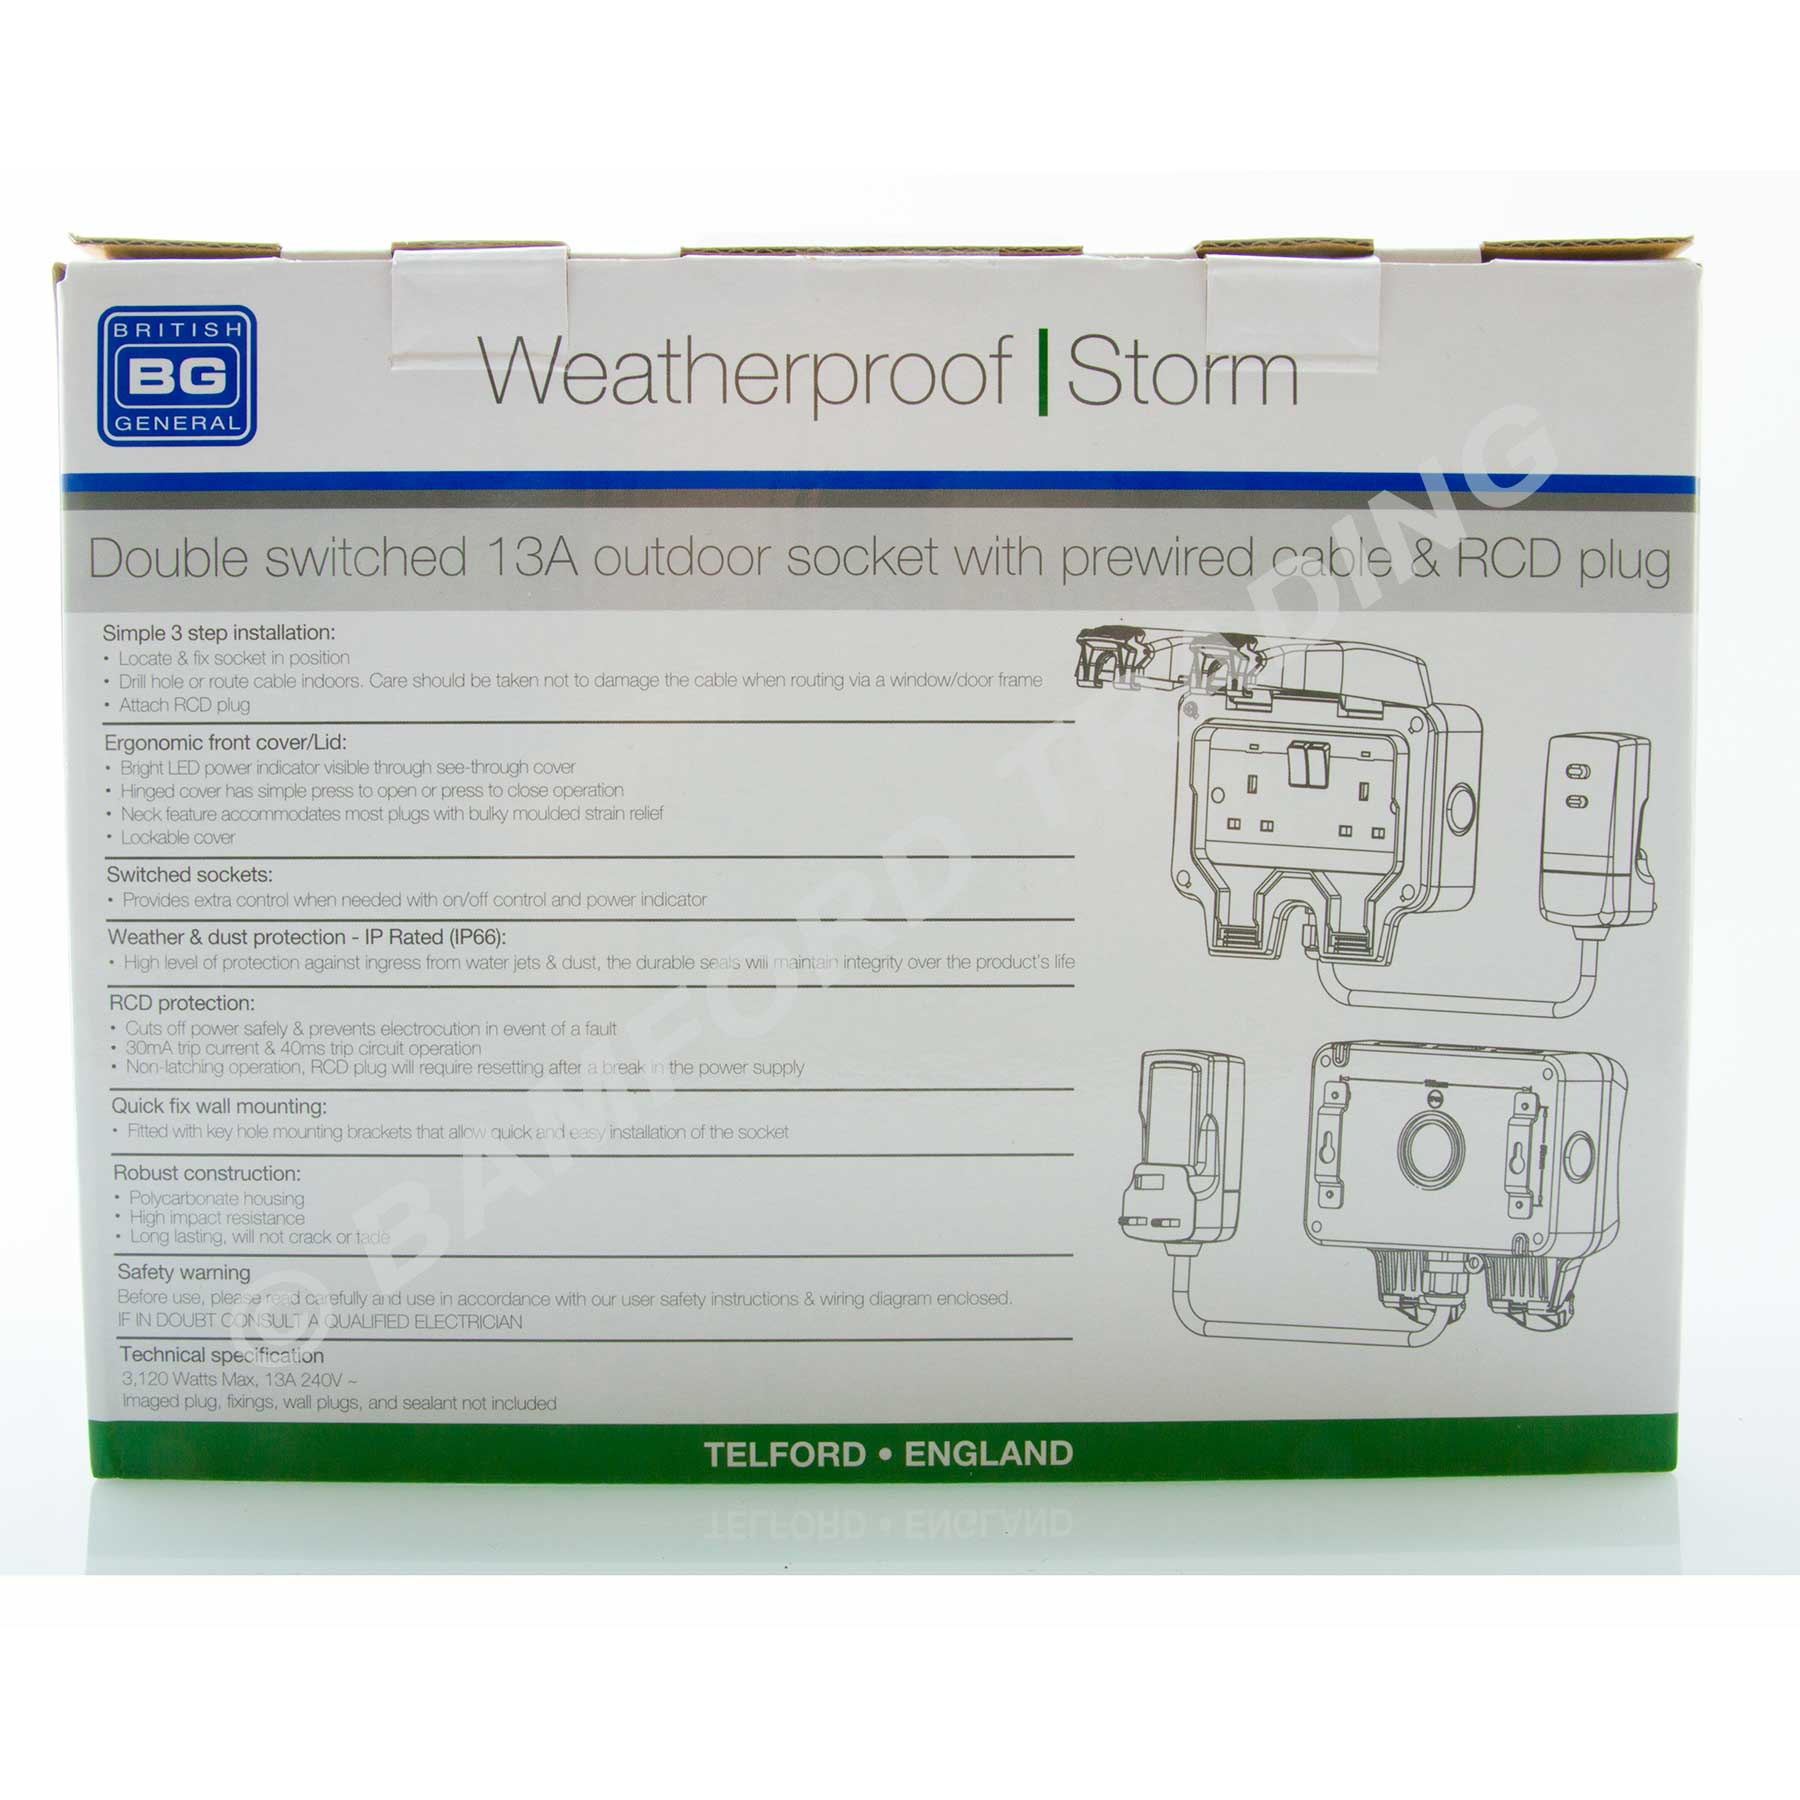 Masterplug weatherproof outdoor mains power kit nexus wp22kit3 masterplug weatherproof outdoor mains power kit nexus wp22kit3 thumbnail 3 asfbconference2016 Image collections